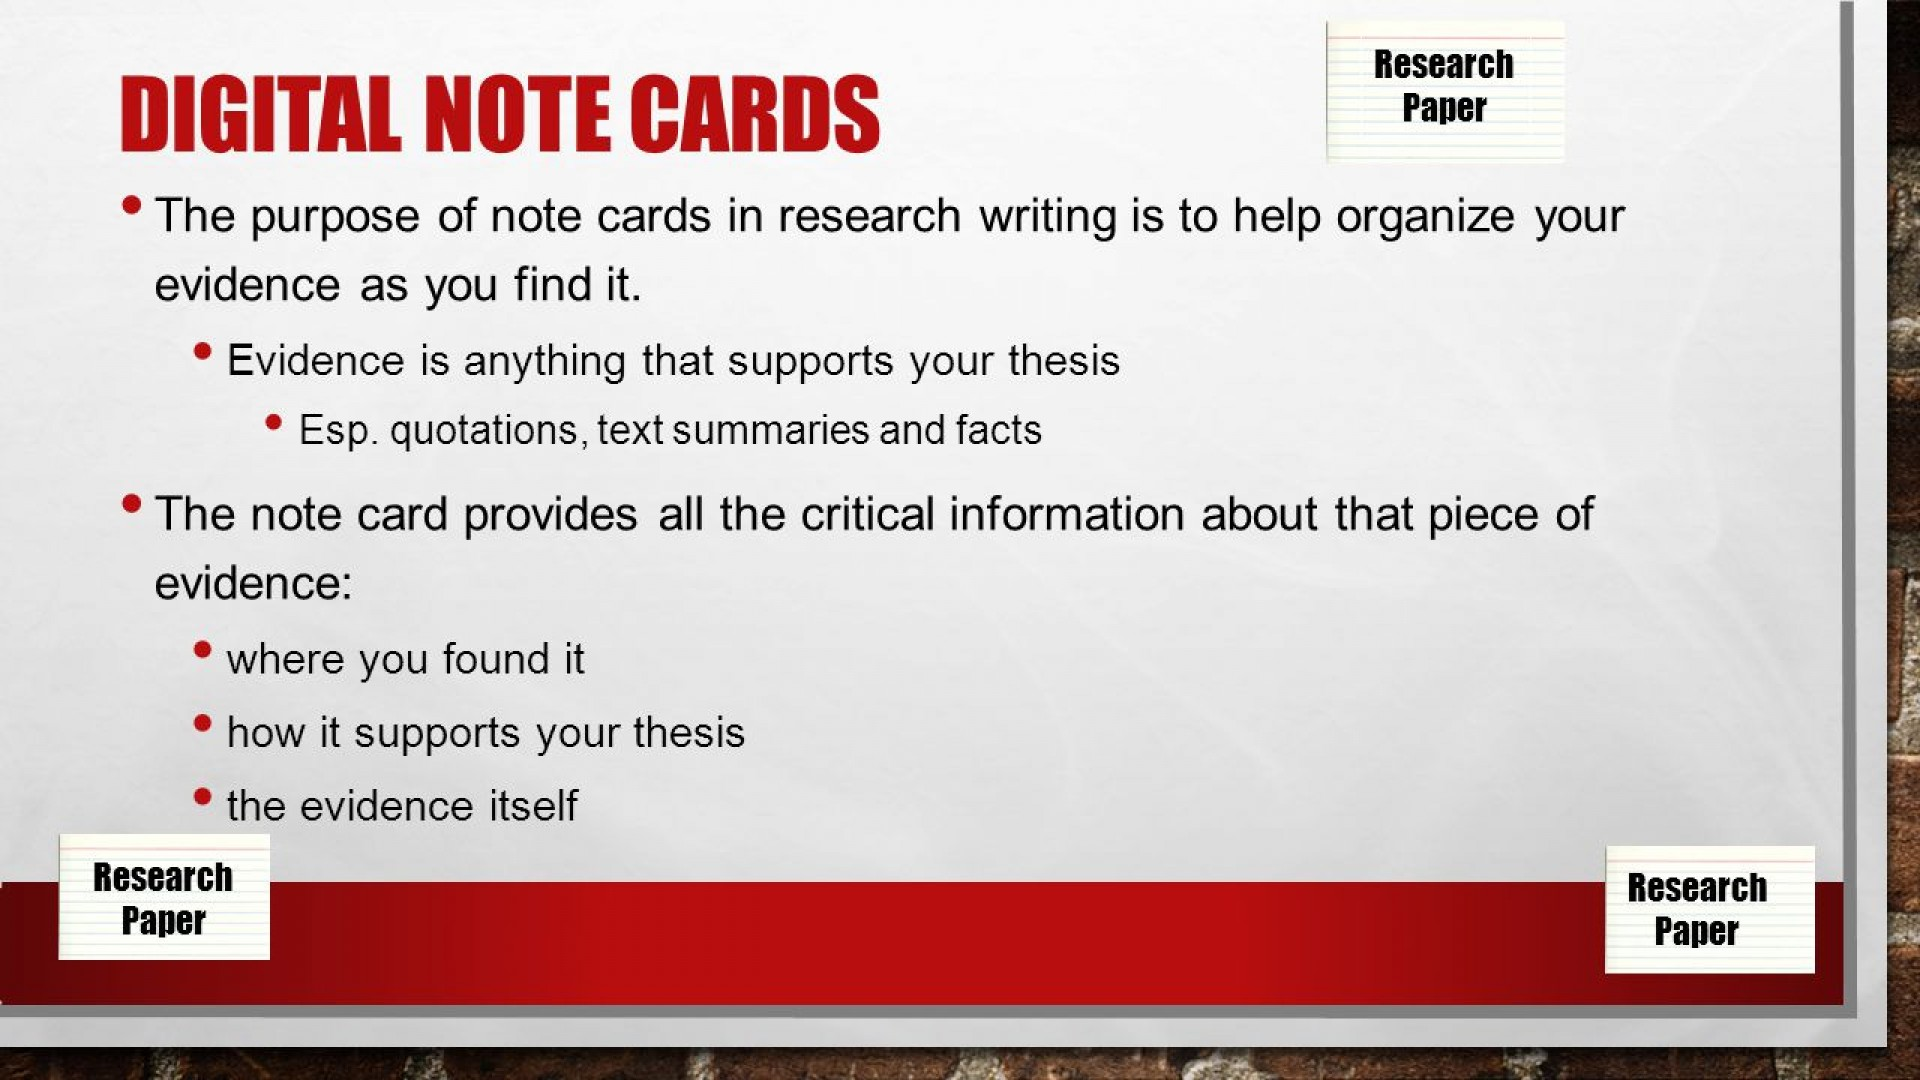 001 Note Cards For Researchs Slide 2 Excellent Research Papers Template Paper Notecards Mla Format 1920